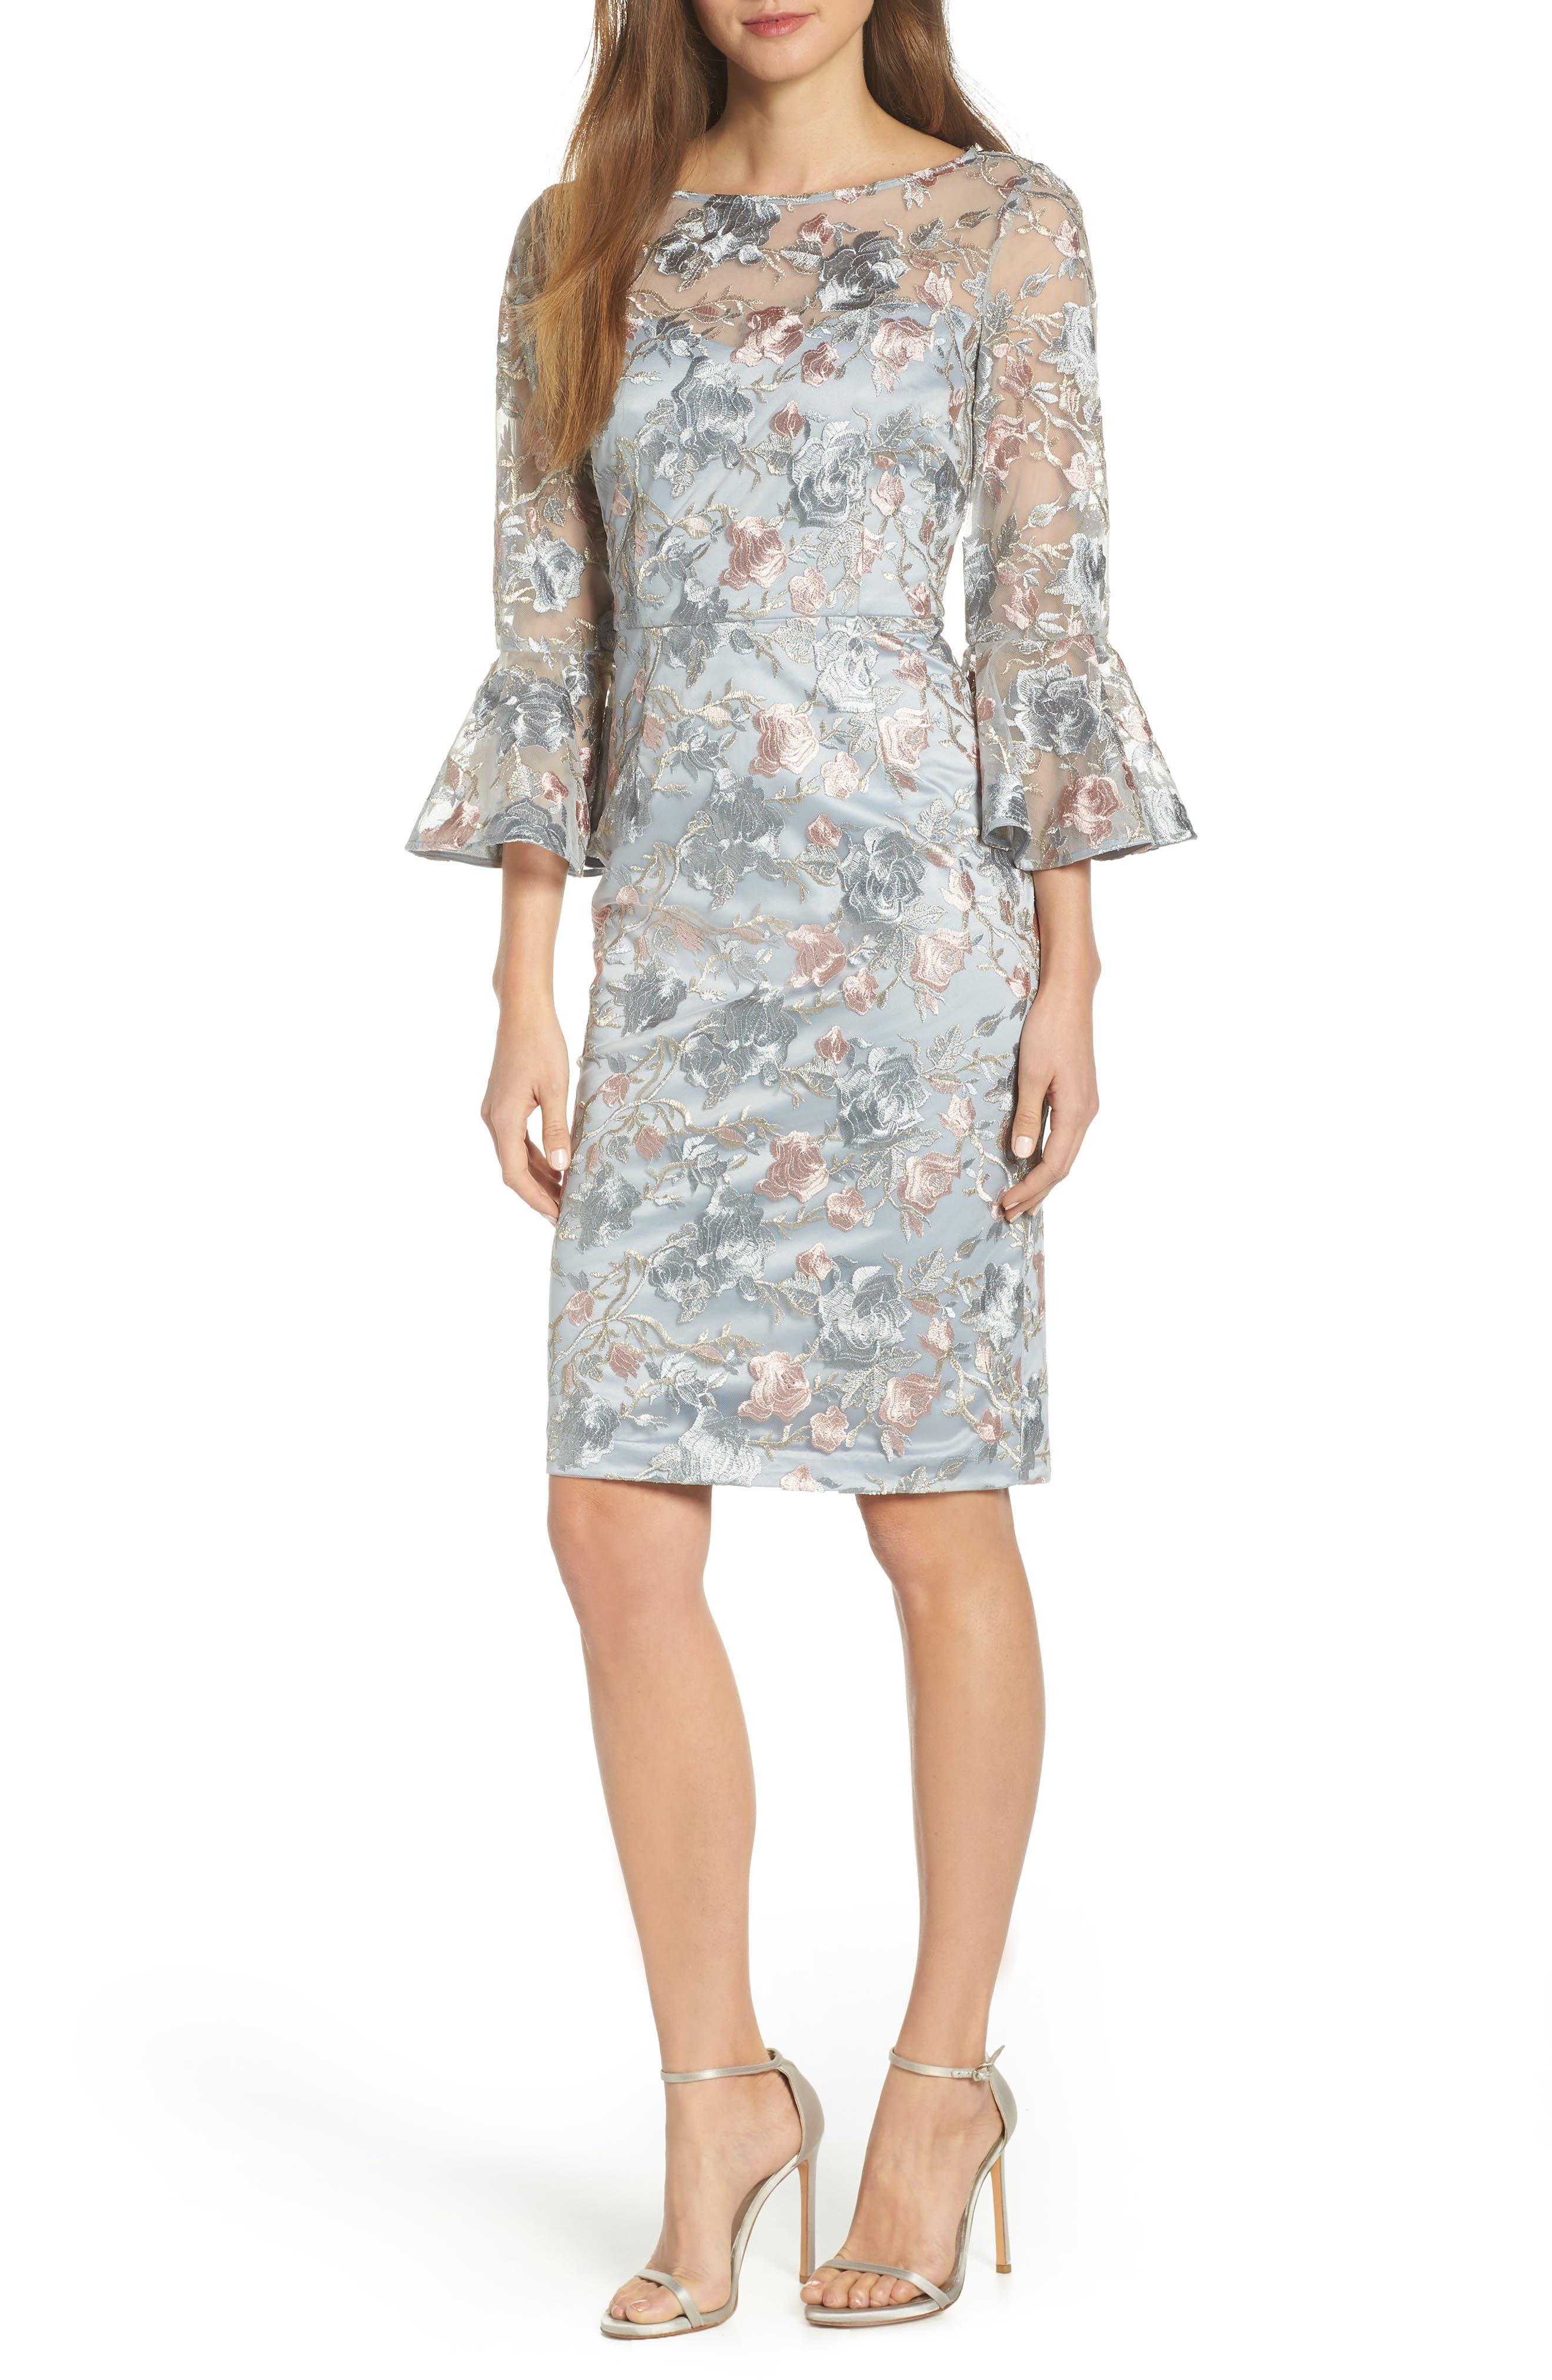 ELIZA J, Floral Embroidered Sheath Dress, Main thumbnail 1, color, 421